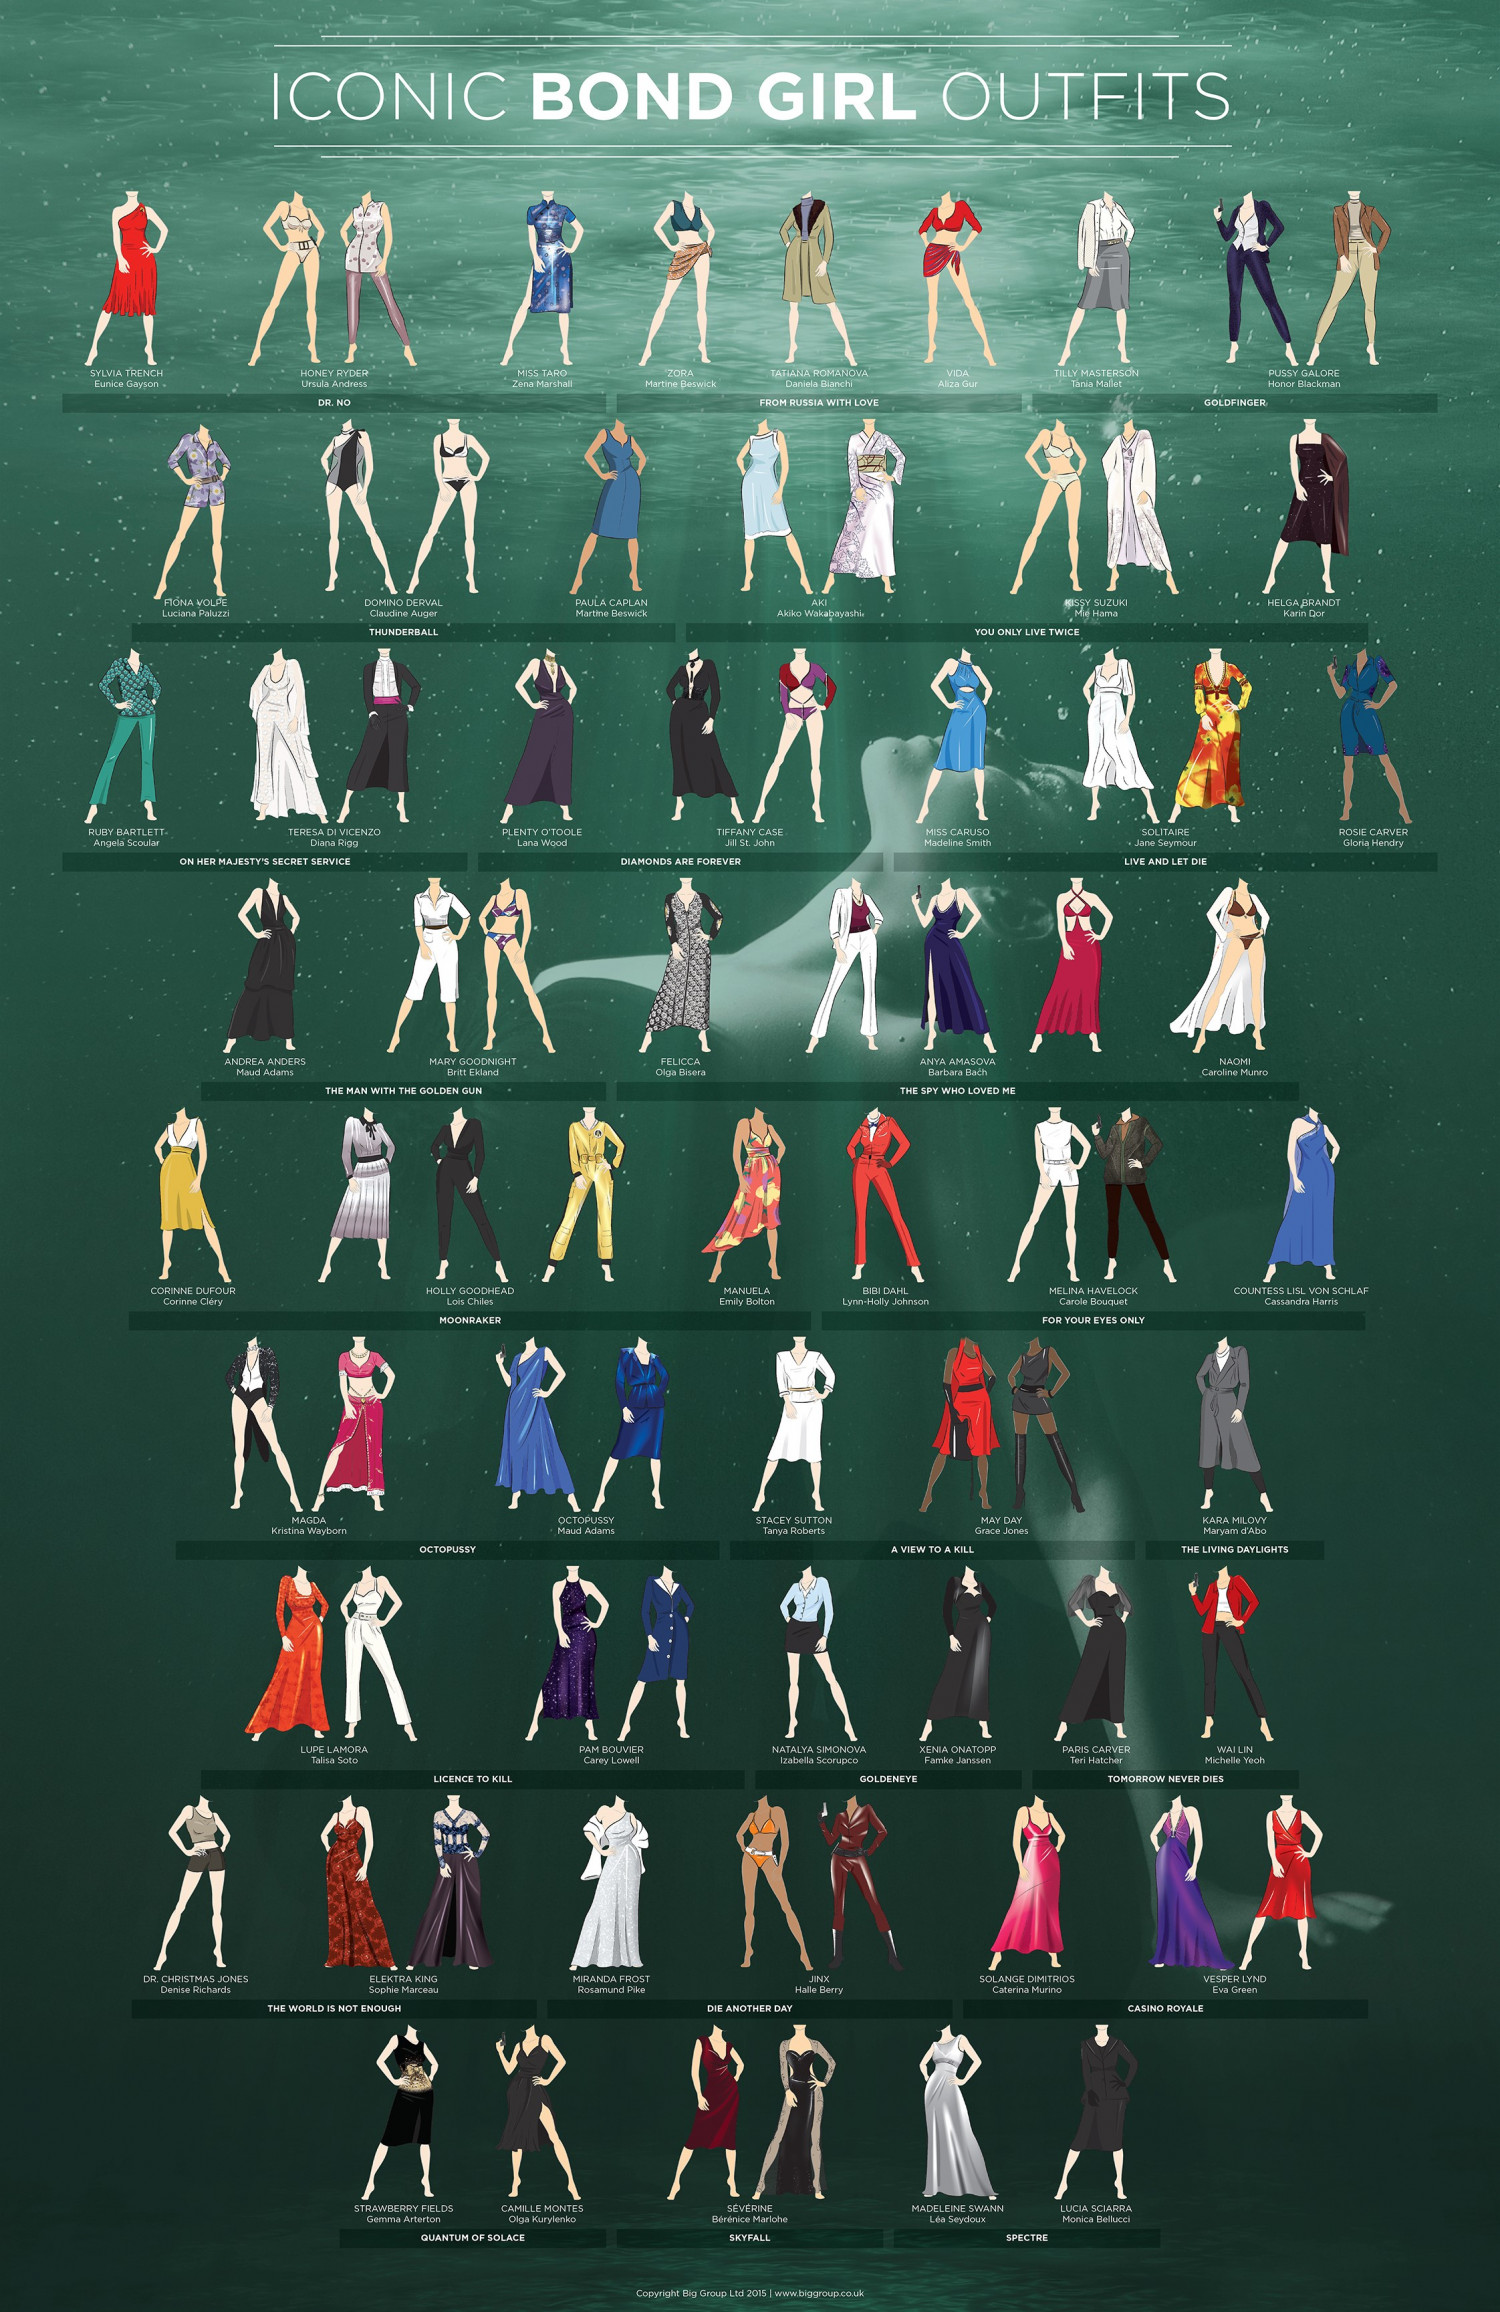 Iconic Bond Girl Outfits Infographic